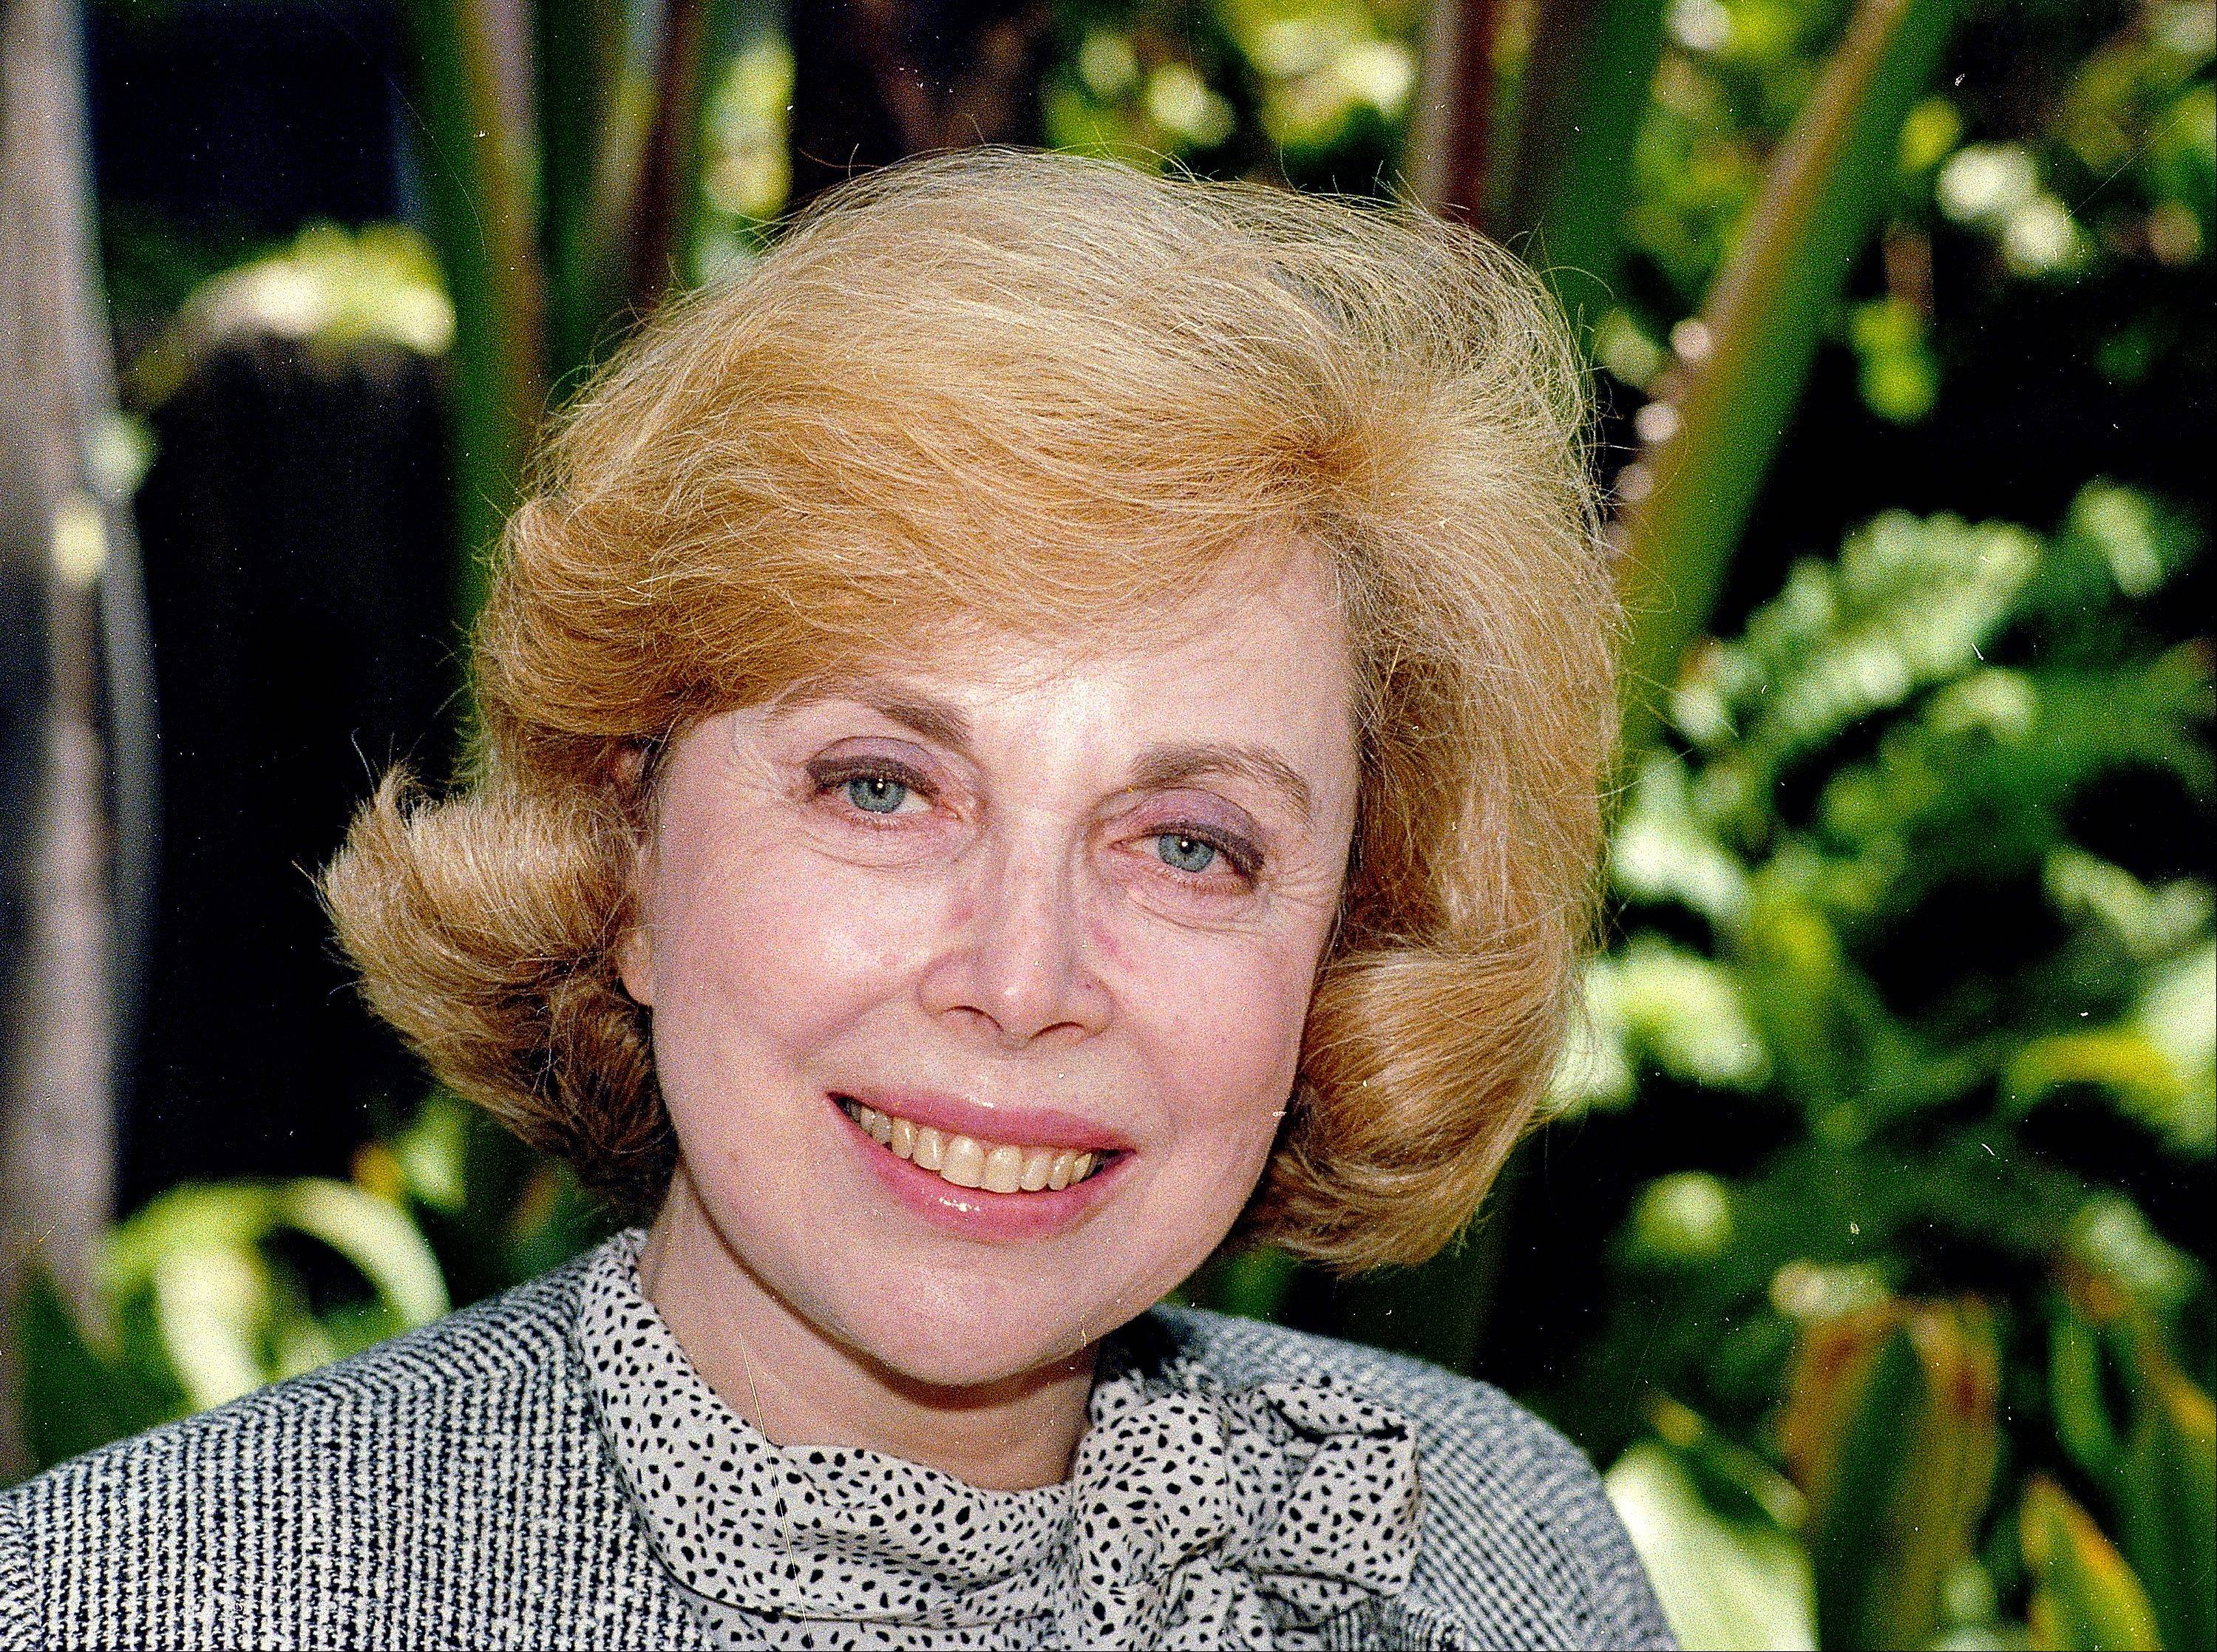 "In this Sept. 1, 1987 file photo, Dr. Joyce Brothers takes a break from a busy schedule in Los Angeles to talk about her upcoming television series, ""The Psychology Behind the News."" Brothers died Monday, May 13, 2013, in New York City, according to publicist Sanford Brokaw. She was 85."